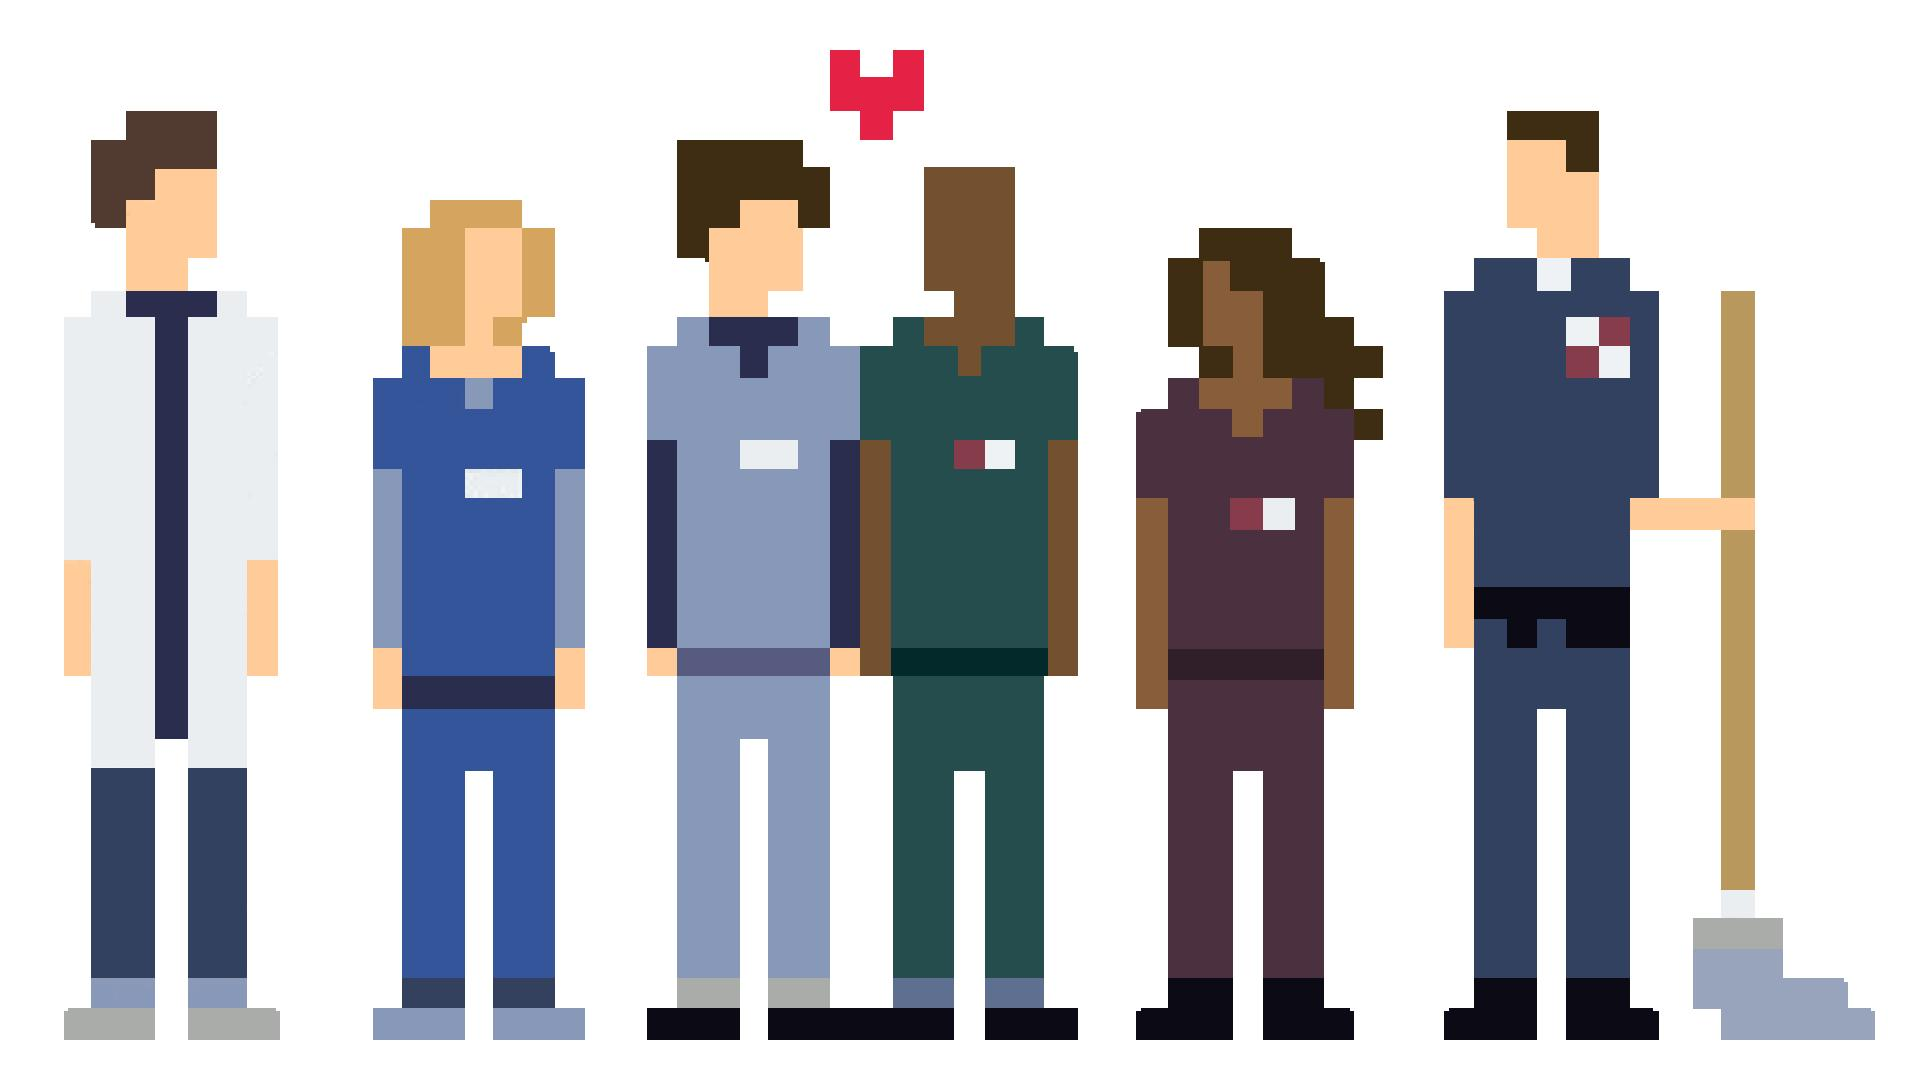 8 Bit Scrubs [1920x1080] : wallpapers